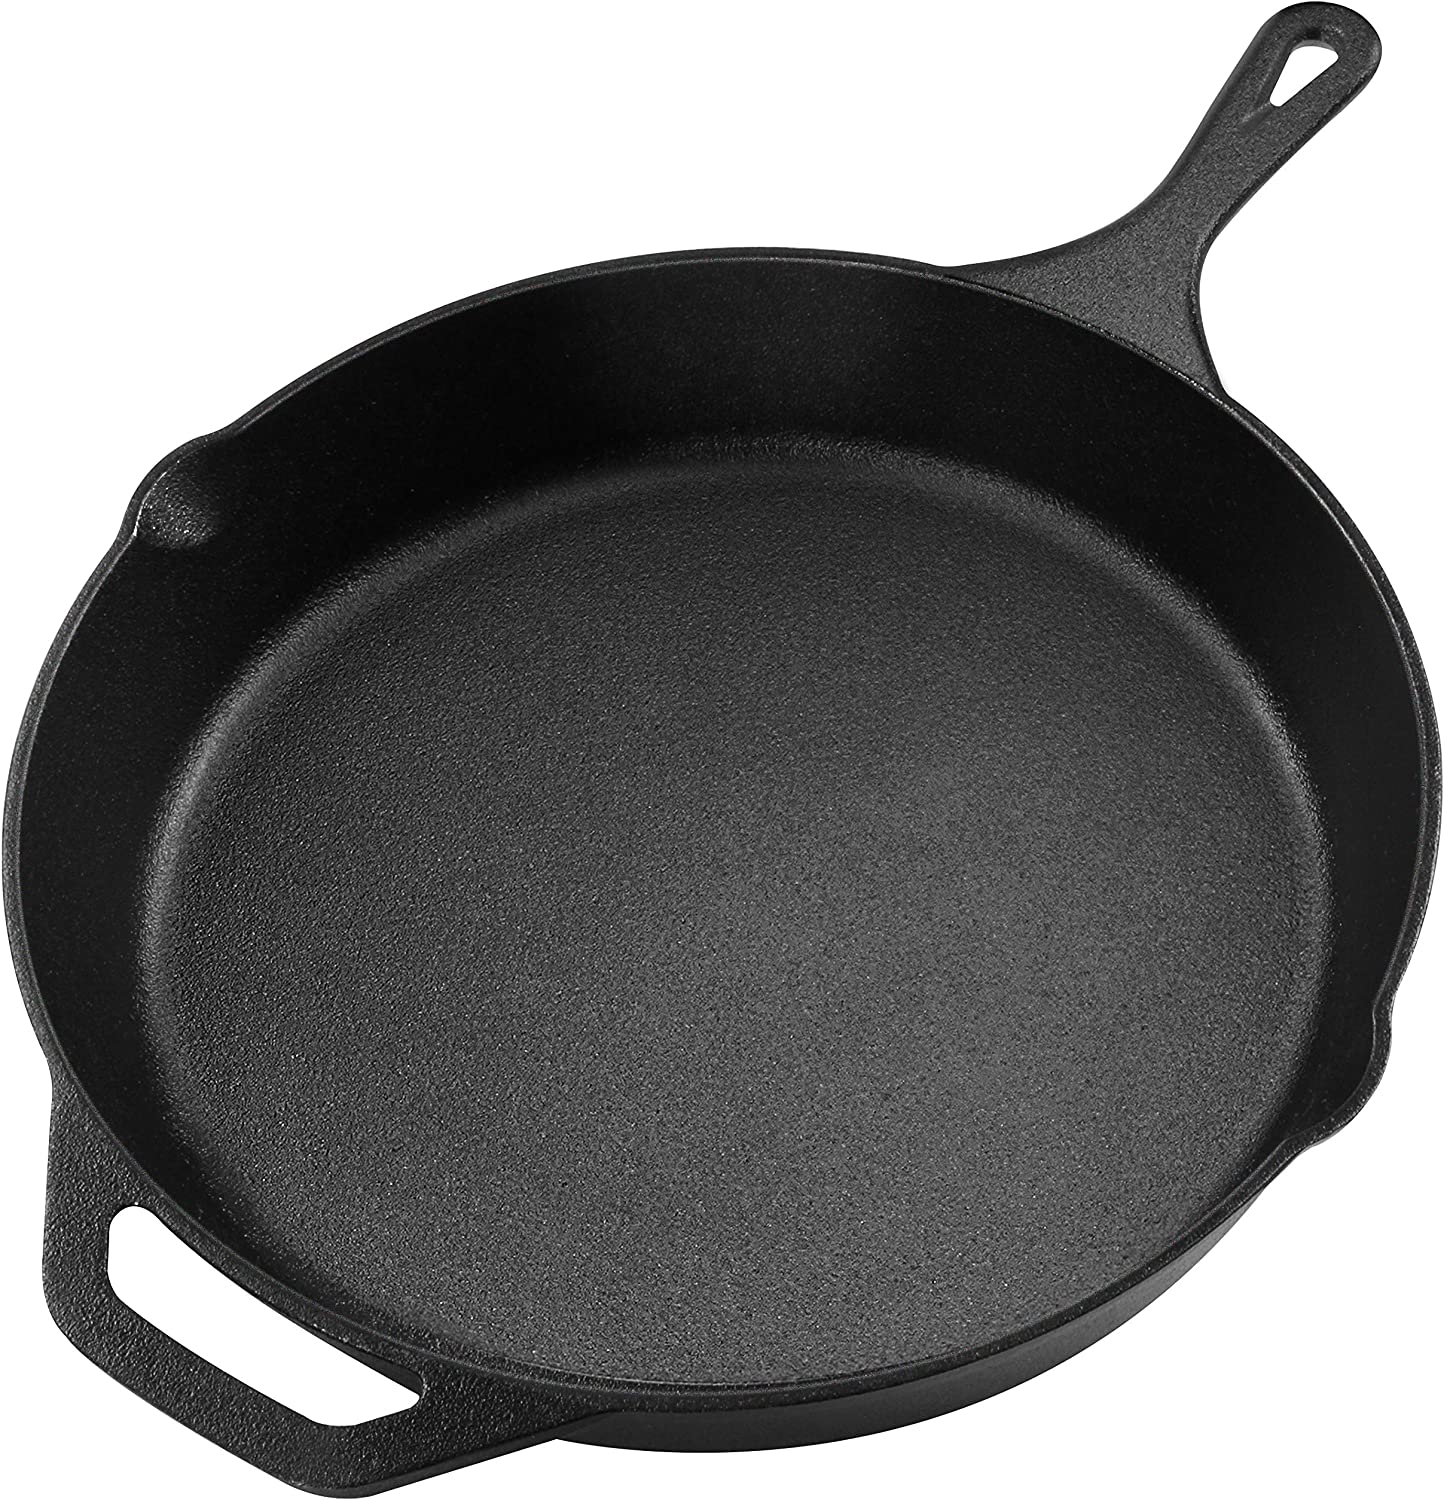 Utopia Kitchen Pre-Seasoned Cast Iron Skillet - 12.5 Inch - Multipurpose Use for Home Kitchen or Restaurant